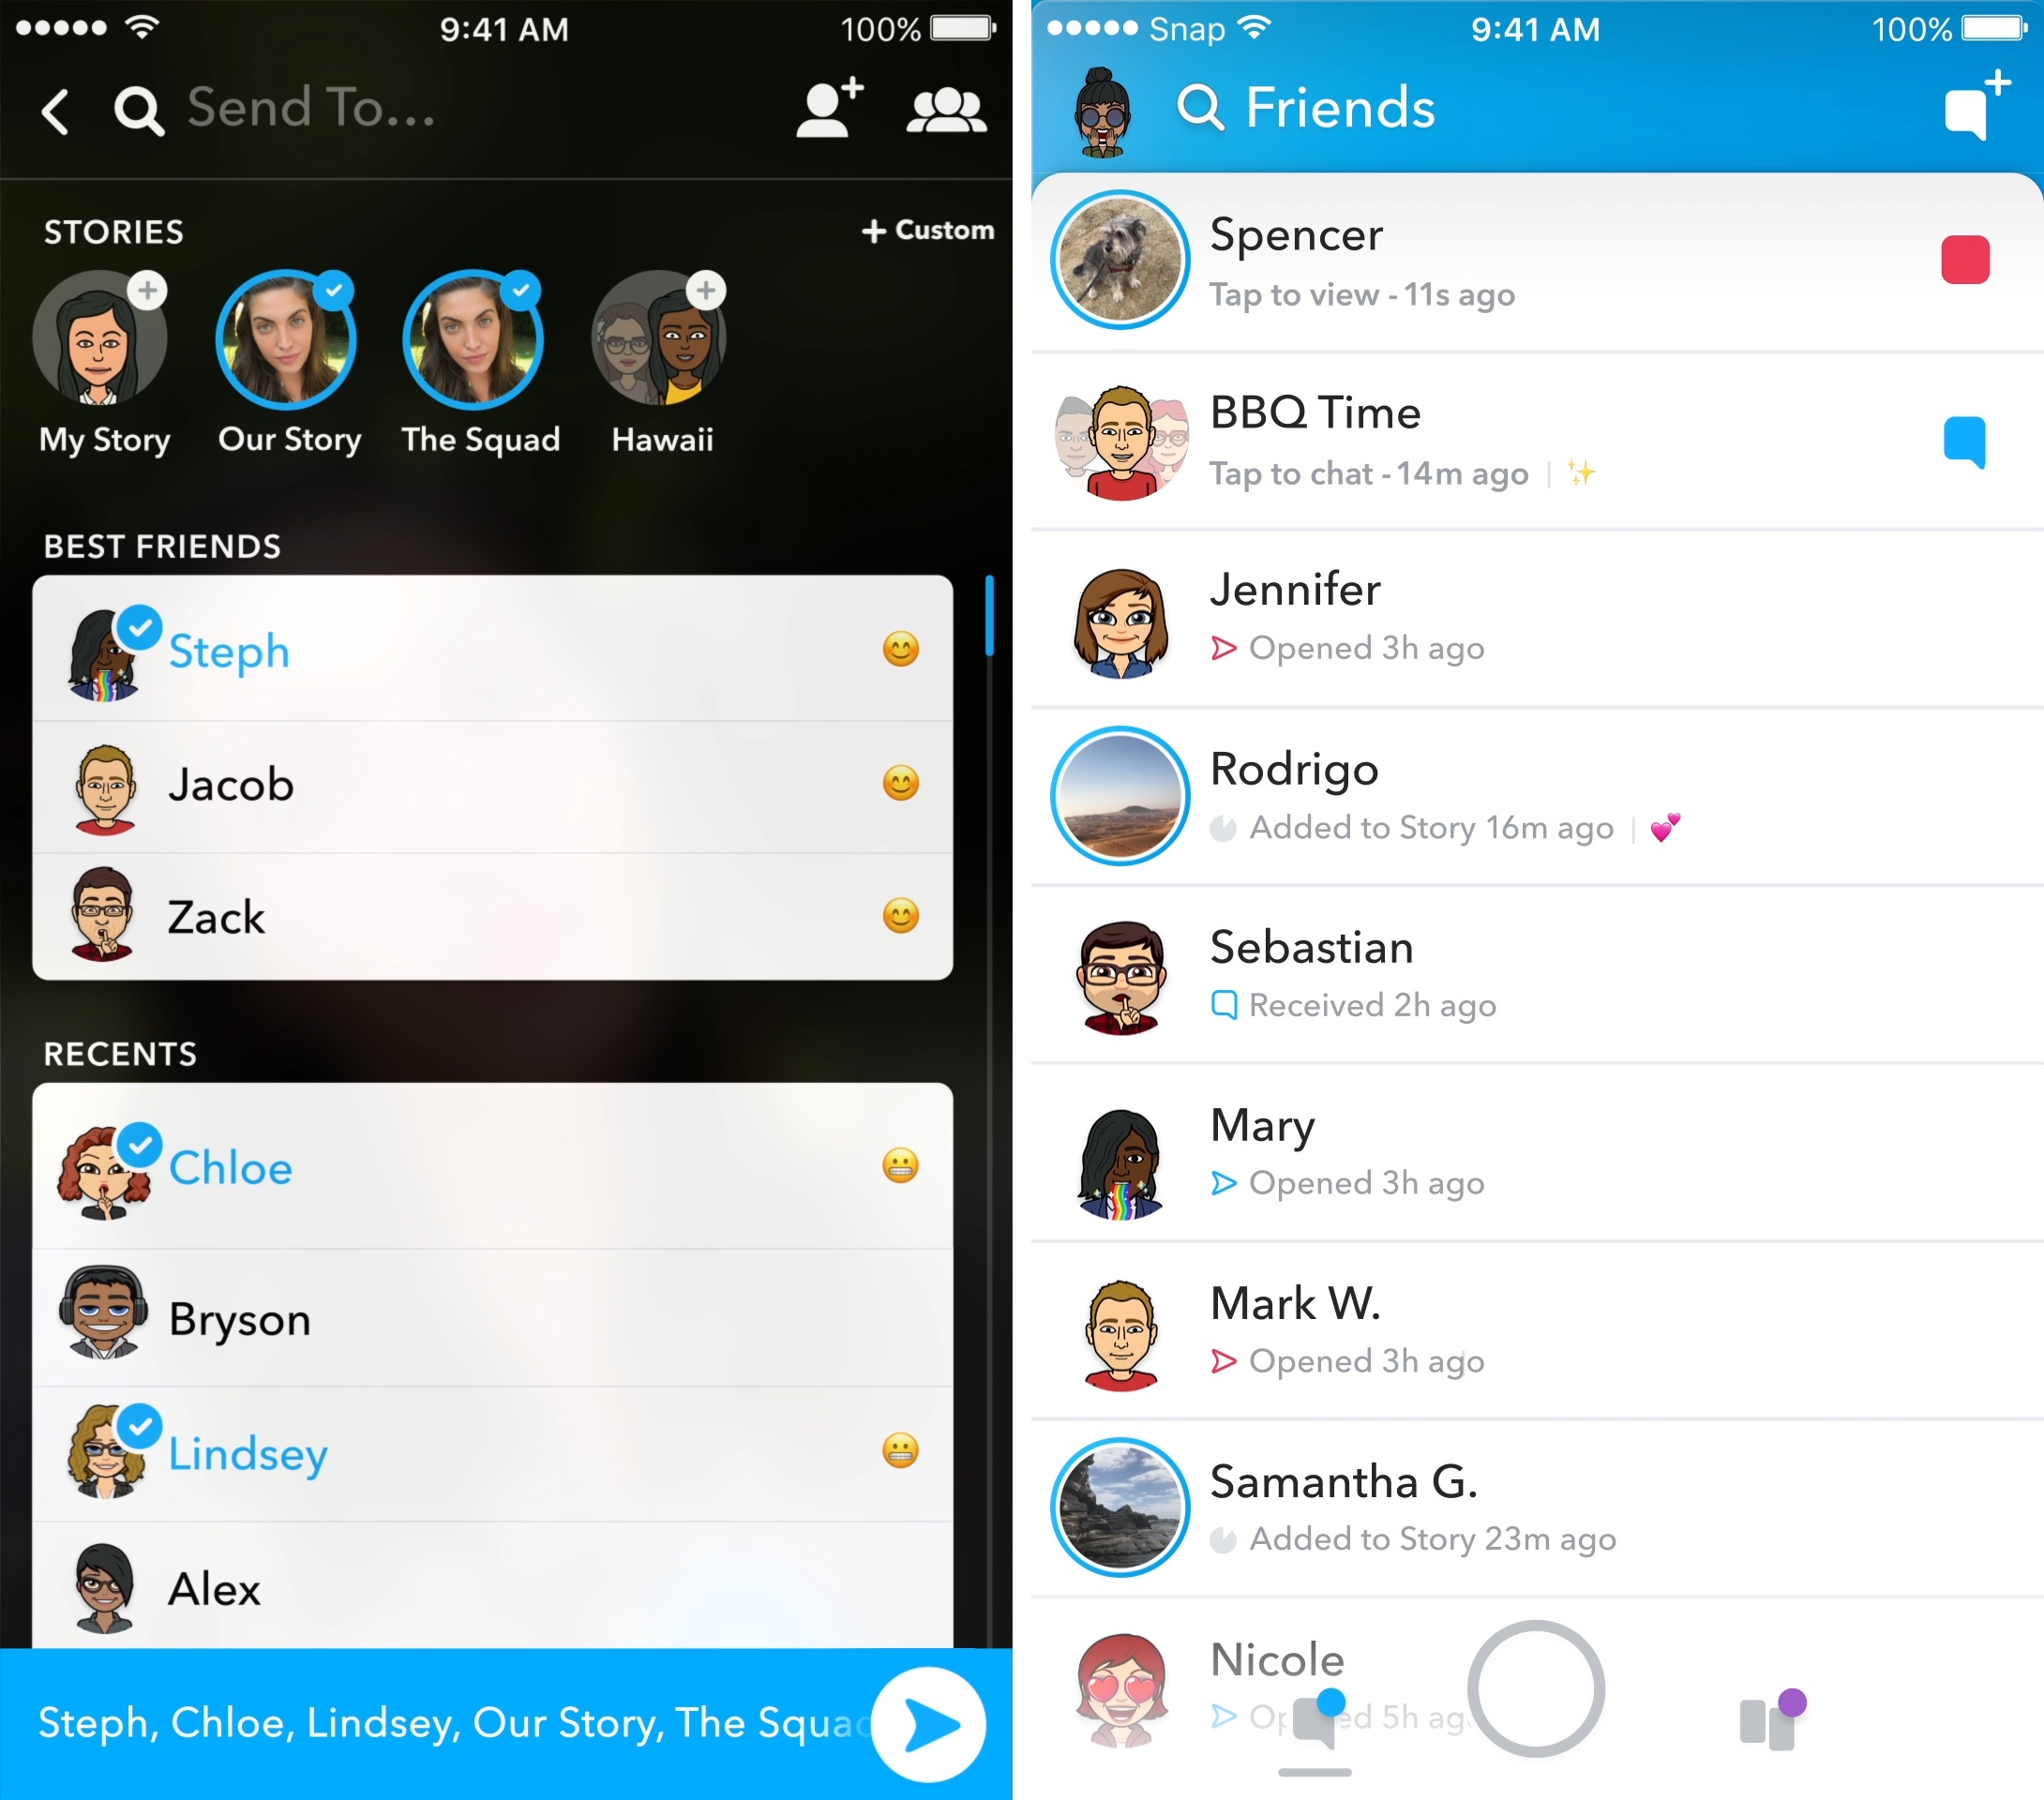 How to view all friends list on snapchat